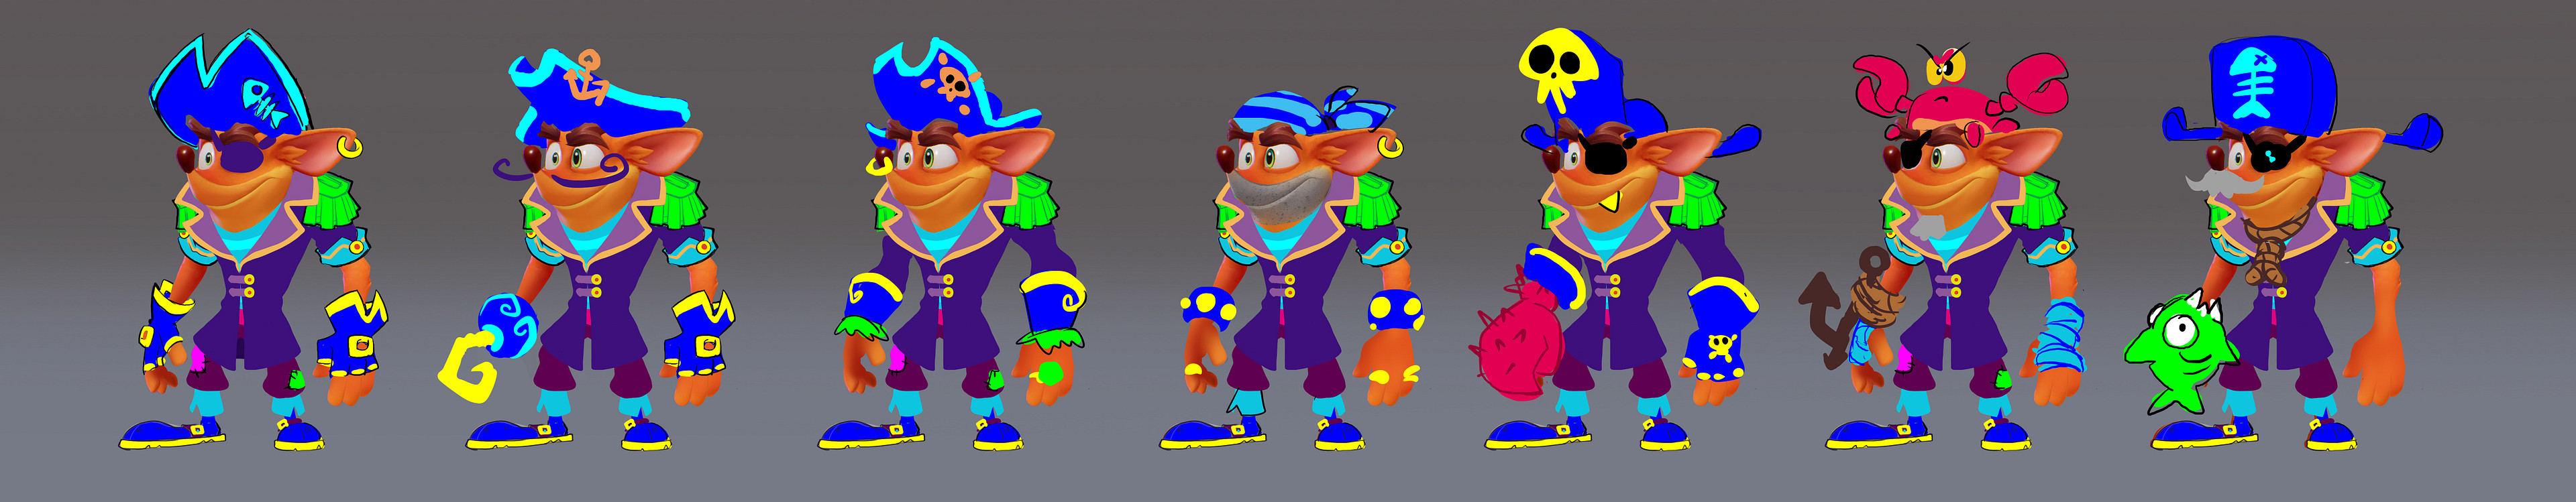 2nd round of Crash Pirate ideations, I tend to blob in neons not for color but for shape layering. I dunno, I find greyscale hard to see lol